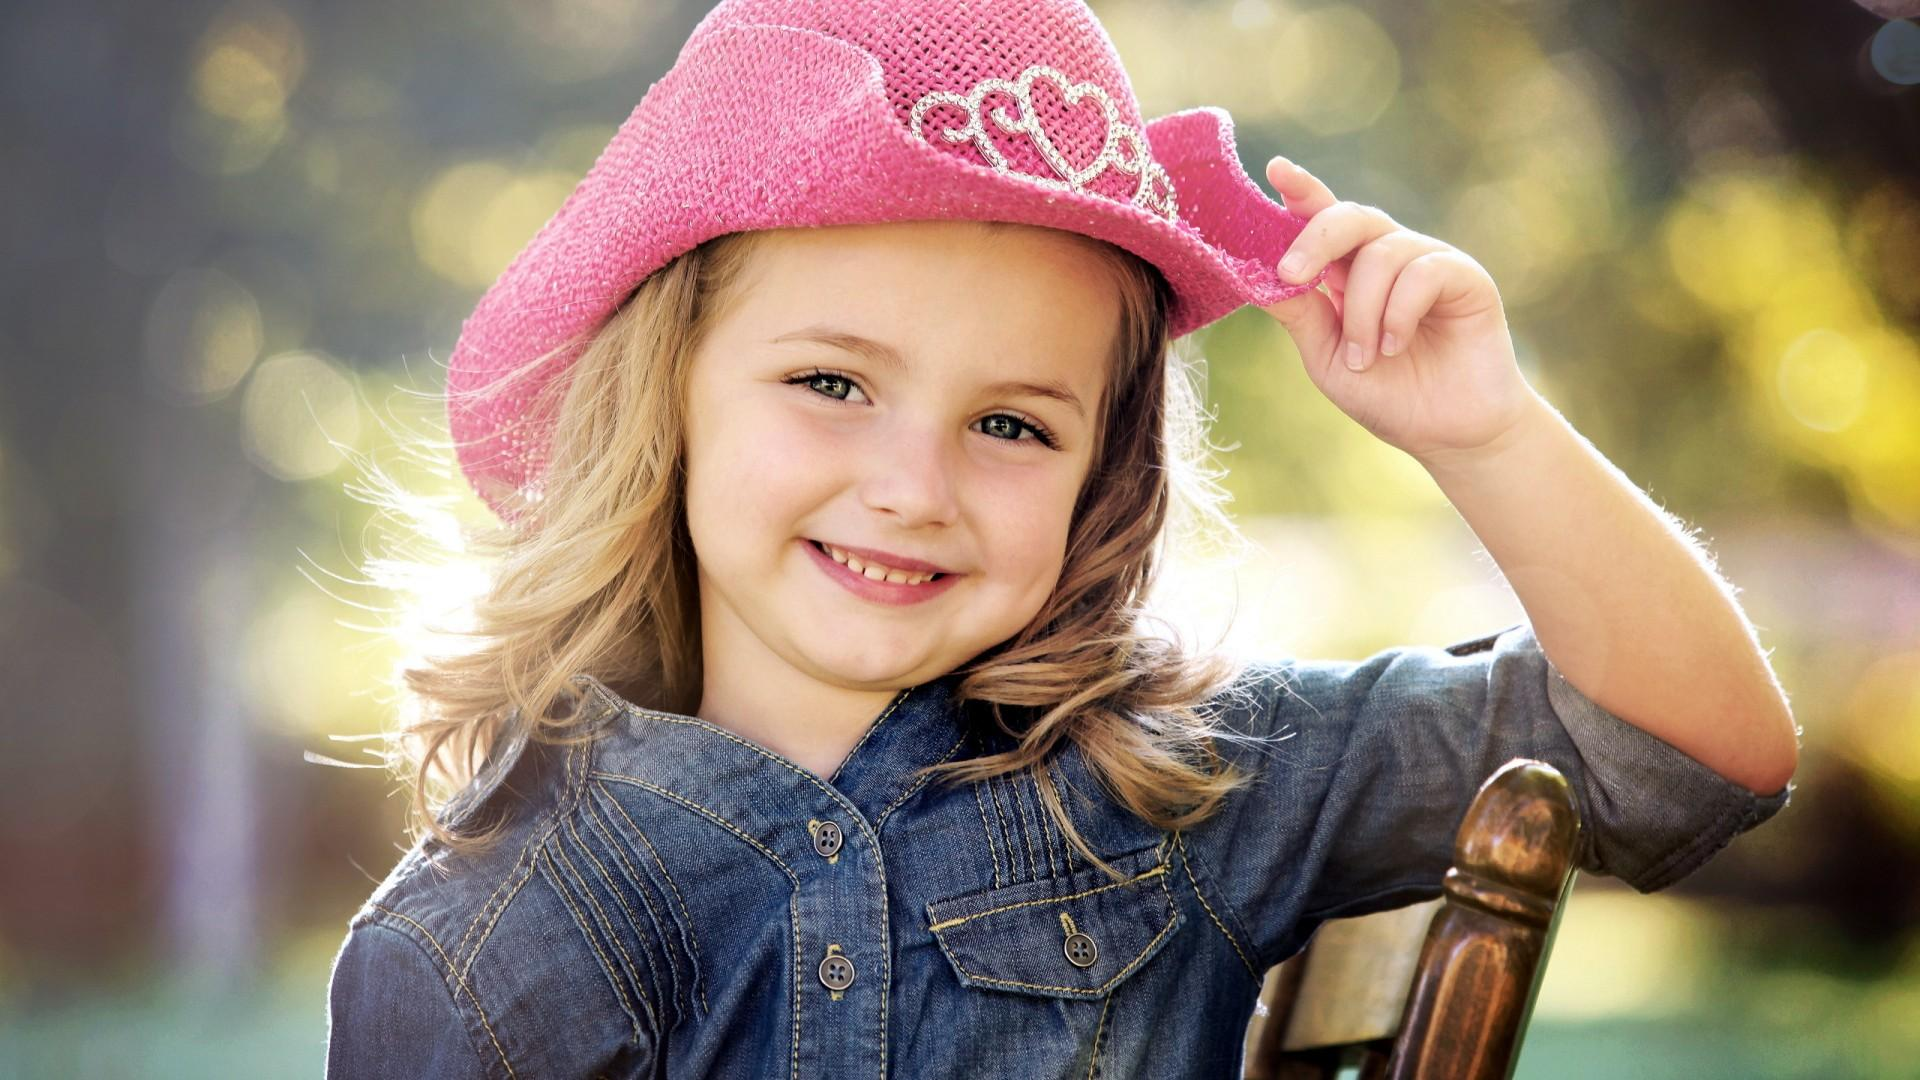 how to get pregnant with a cute baby girl naturally?